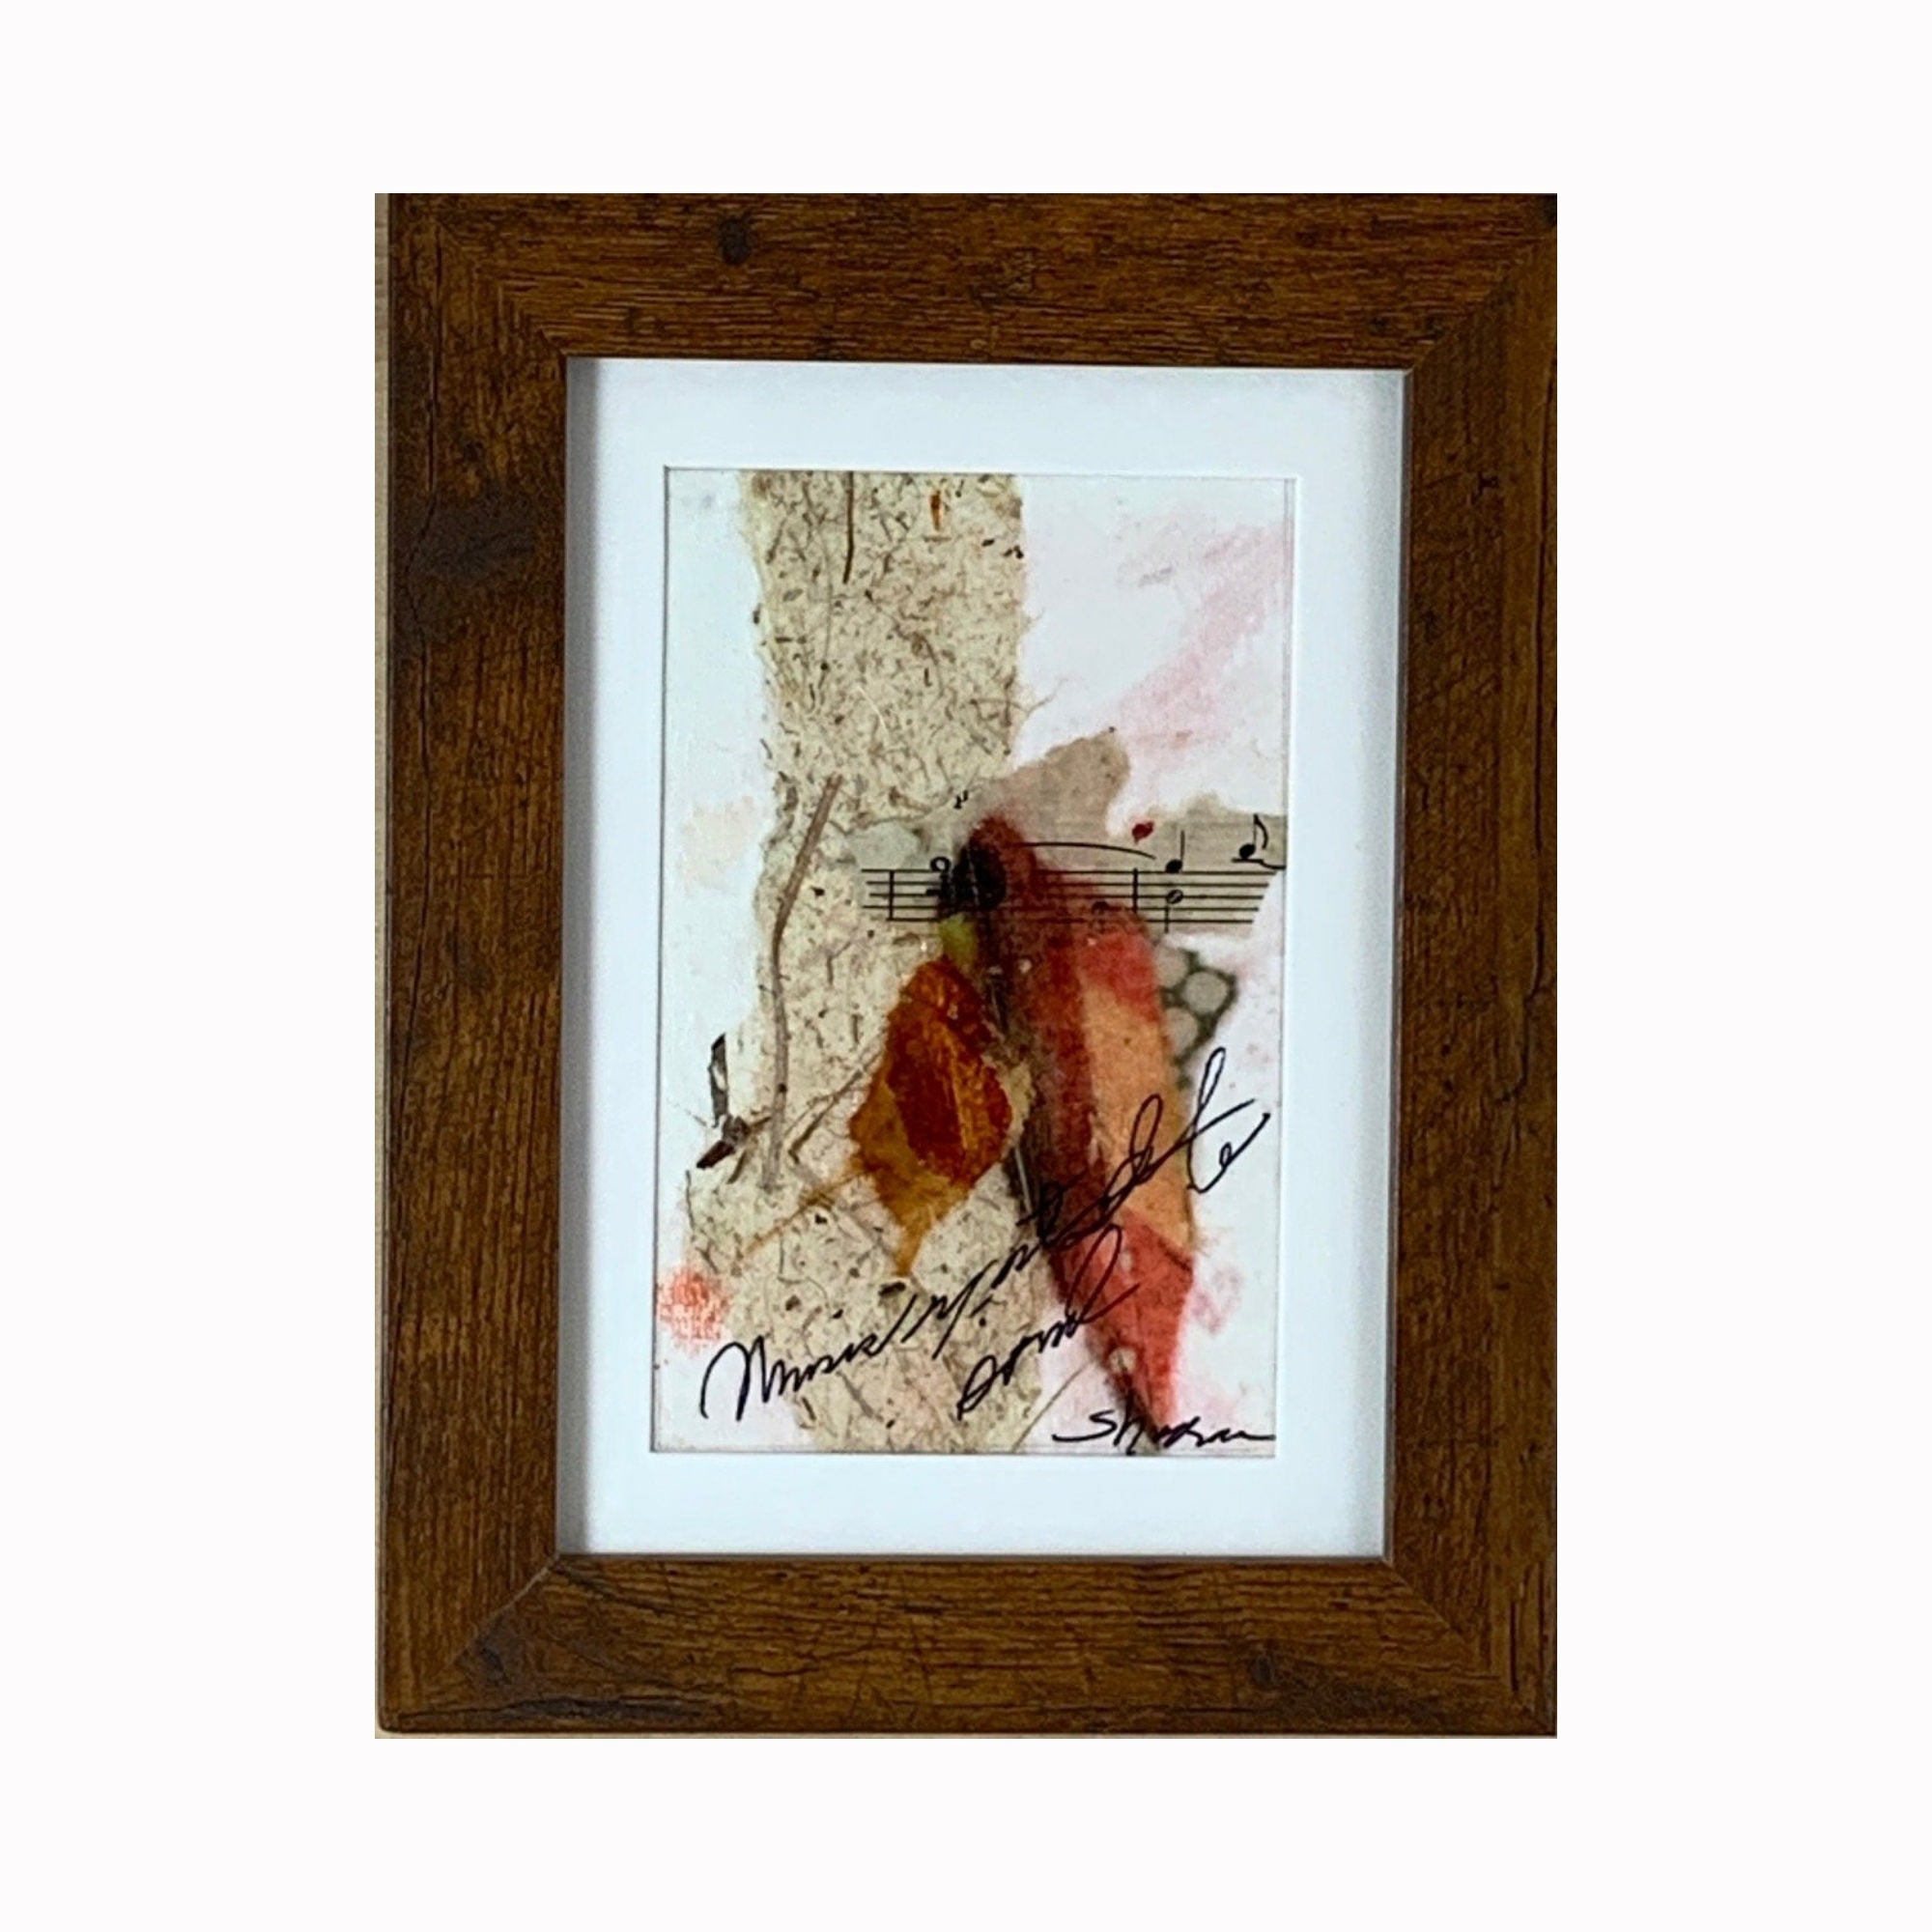 """Music"" is a mixed media abstract painting by Texas artist Sharon Whisnand 